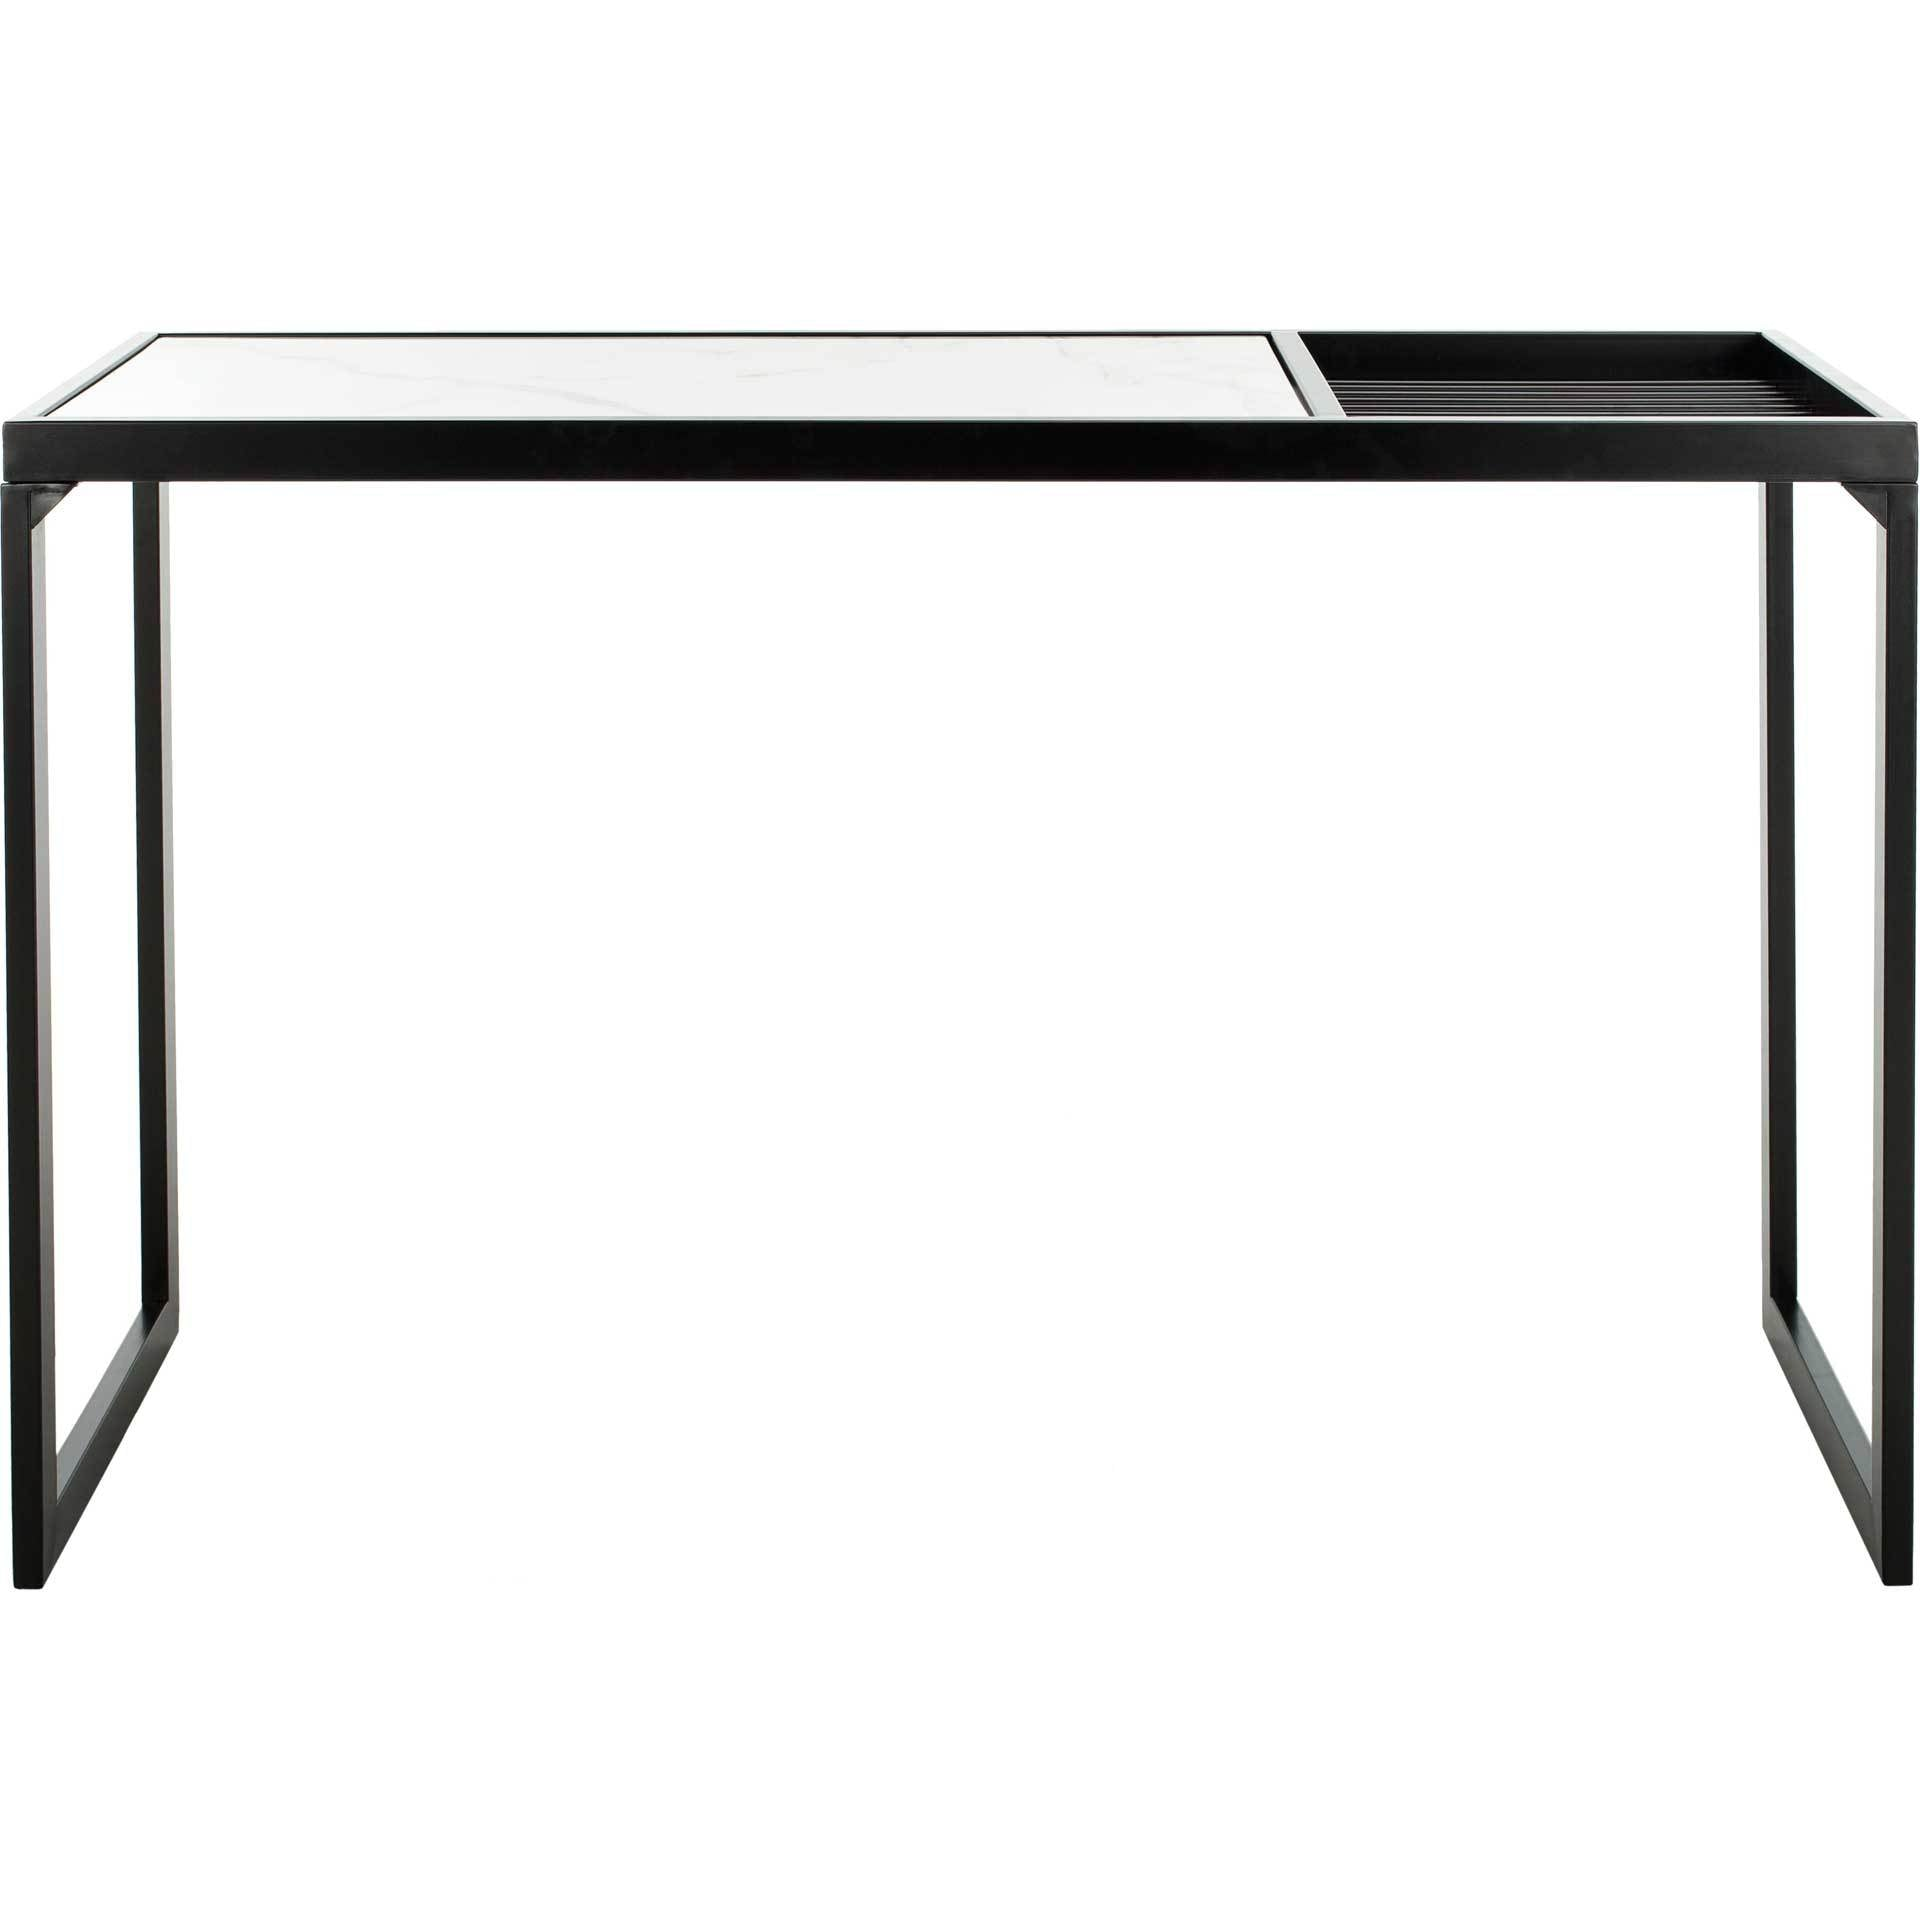 Zubair Console Table